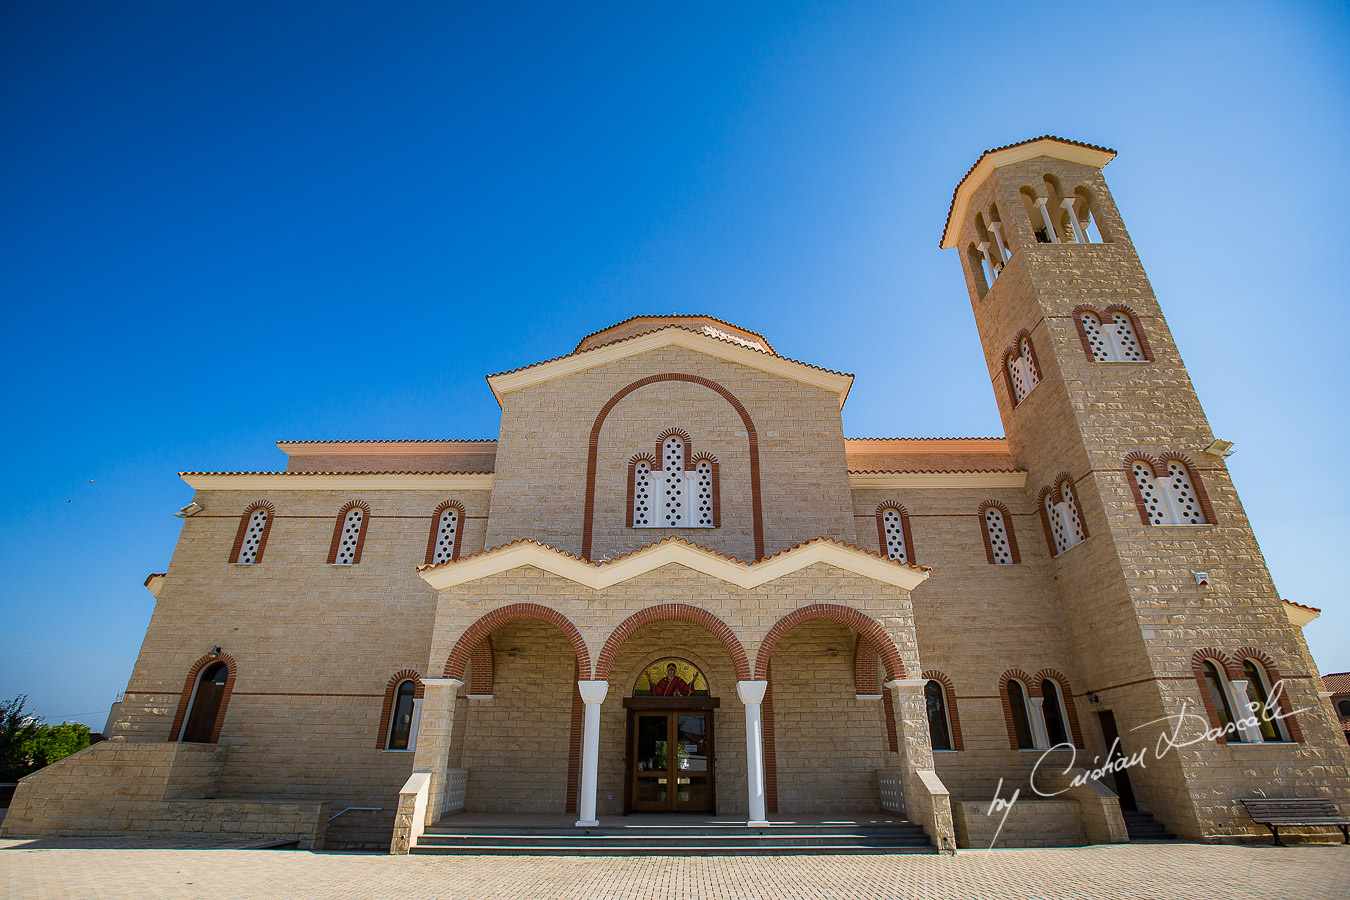 The church, moments captured by Cyprus Wedding Photographer Cristian Dascalu at a beautiful wedding in Larnaka, Cyprus.